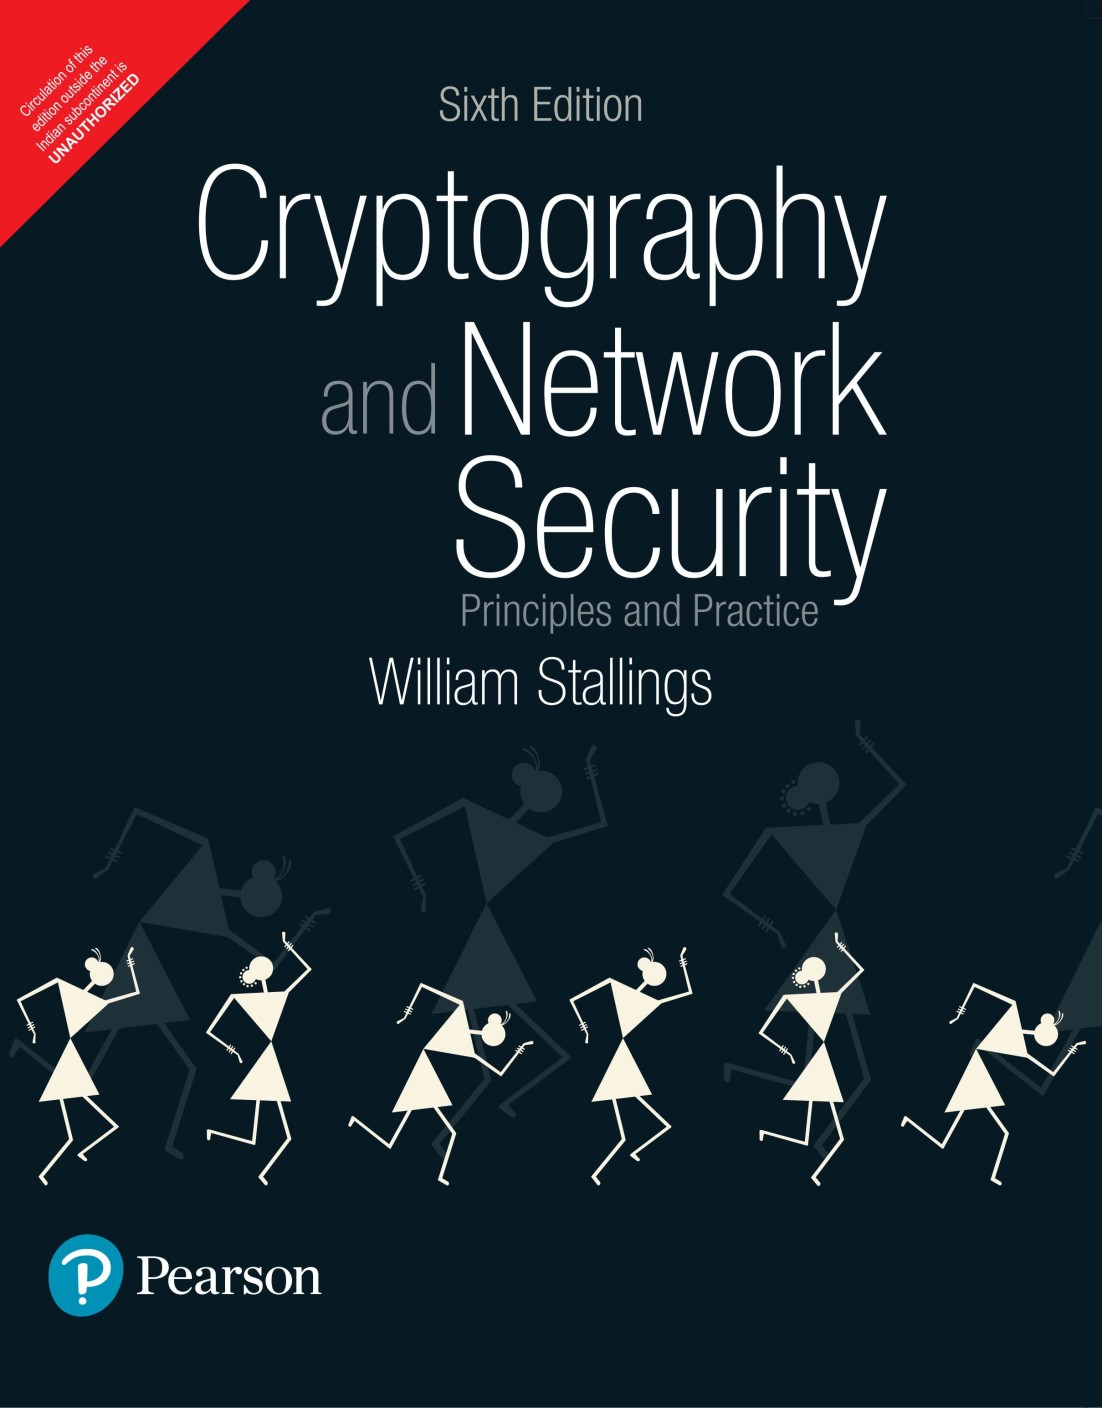 cryptography book by william stallings pdf